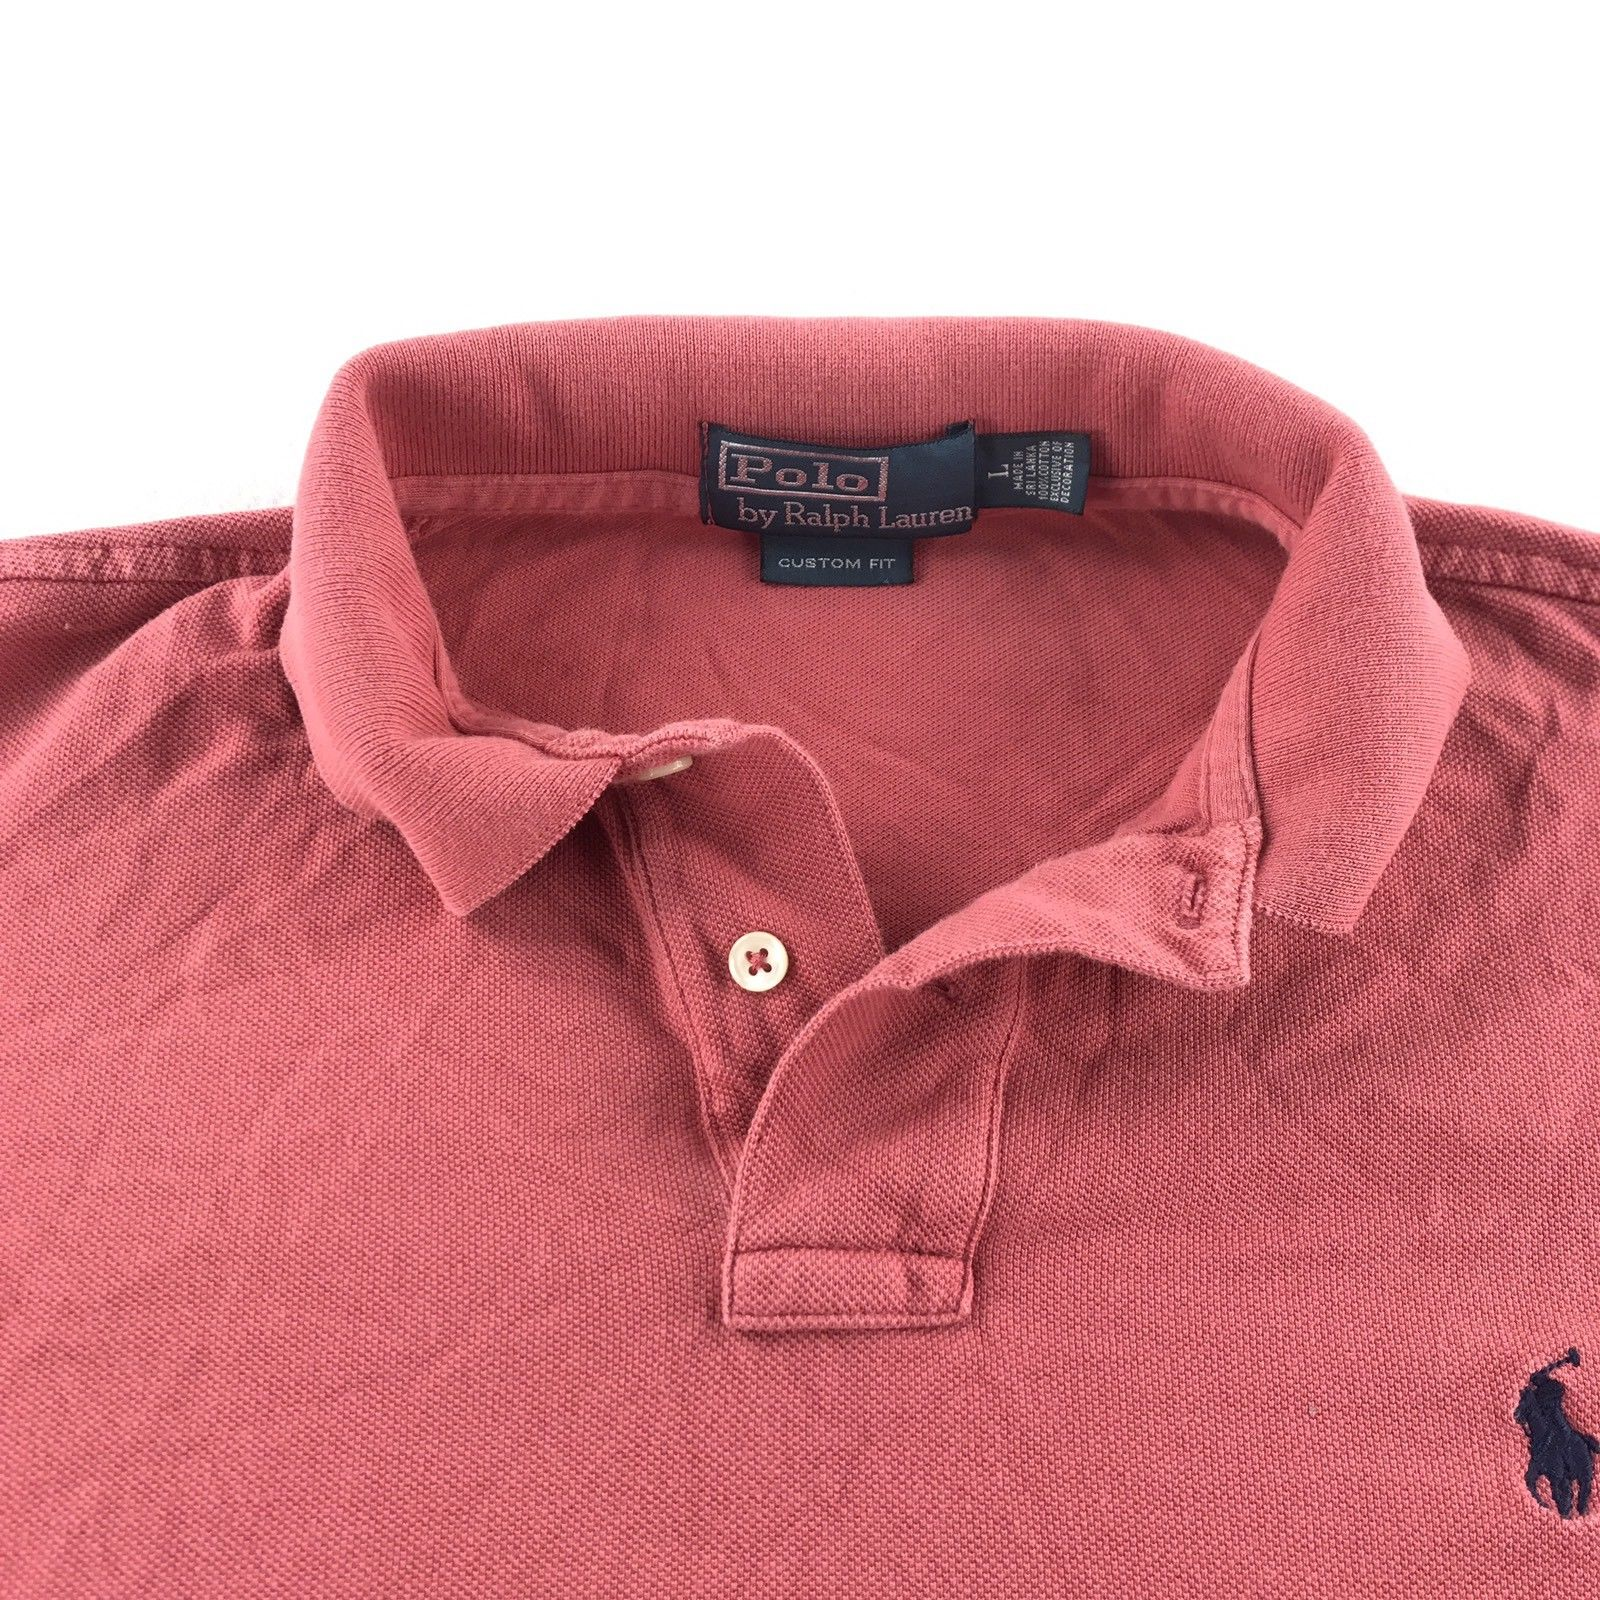 Where To Buy Polo Shirts In Sri Lanka Chad Crowley Productions